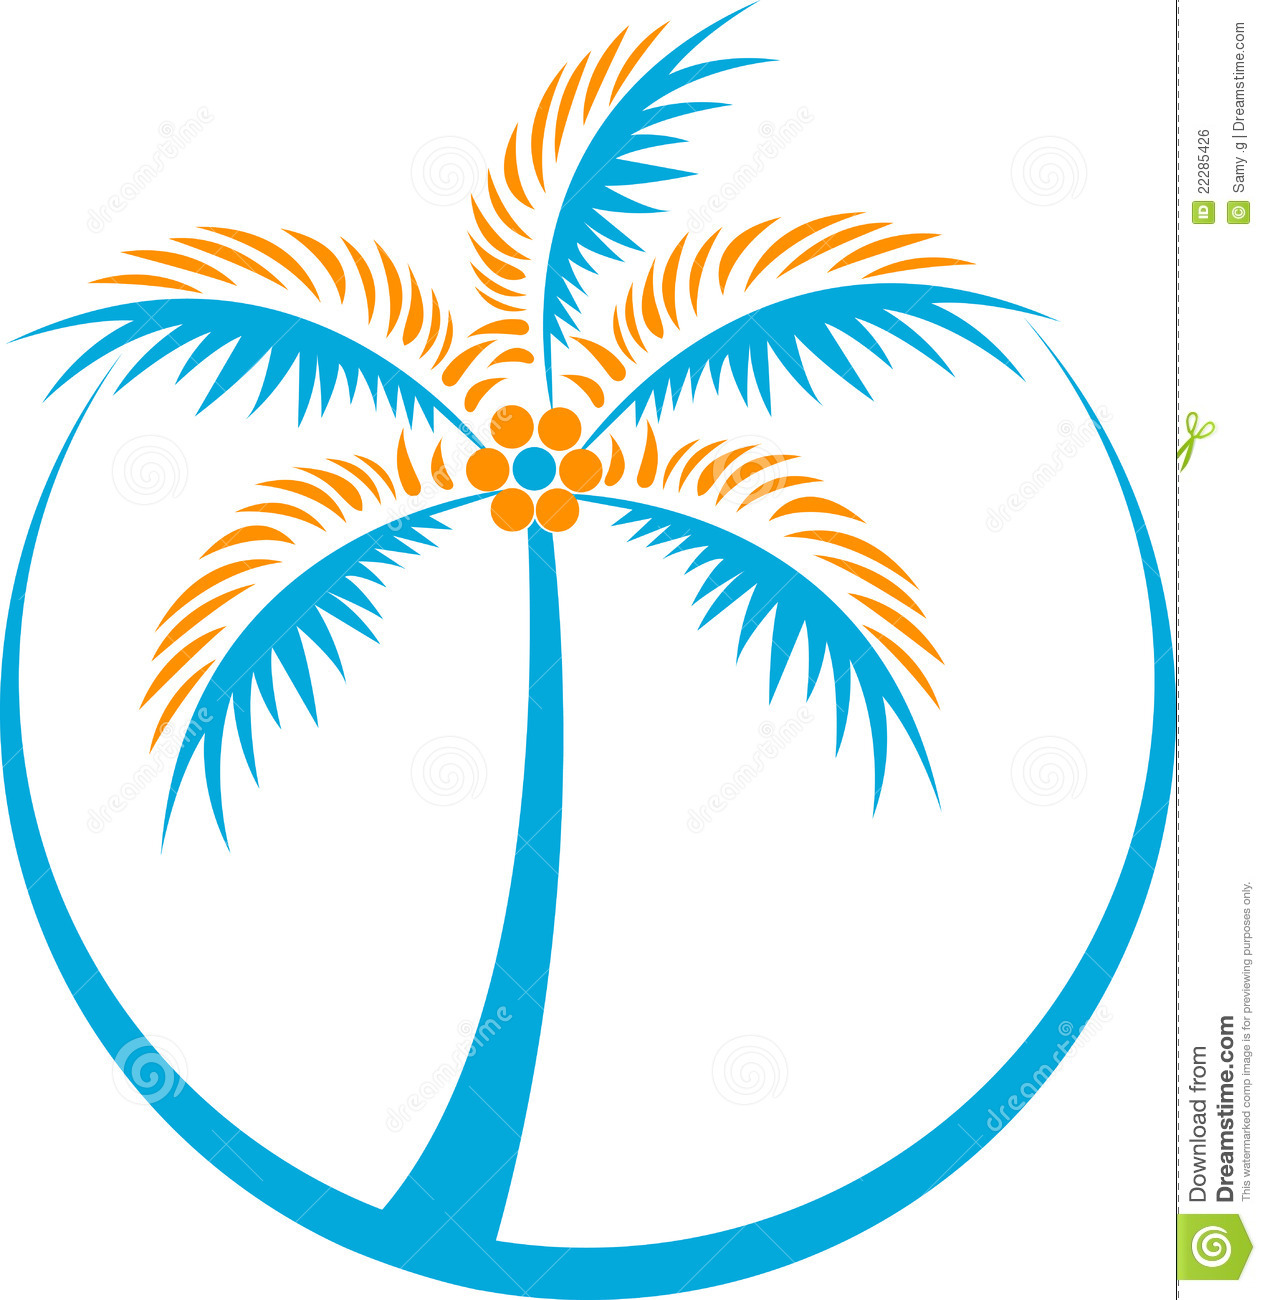 Royalty Free Stock Image Coconut Tree Logo Image22285426 on Collage Tree